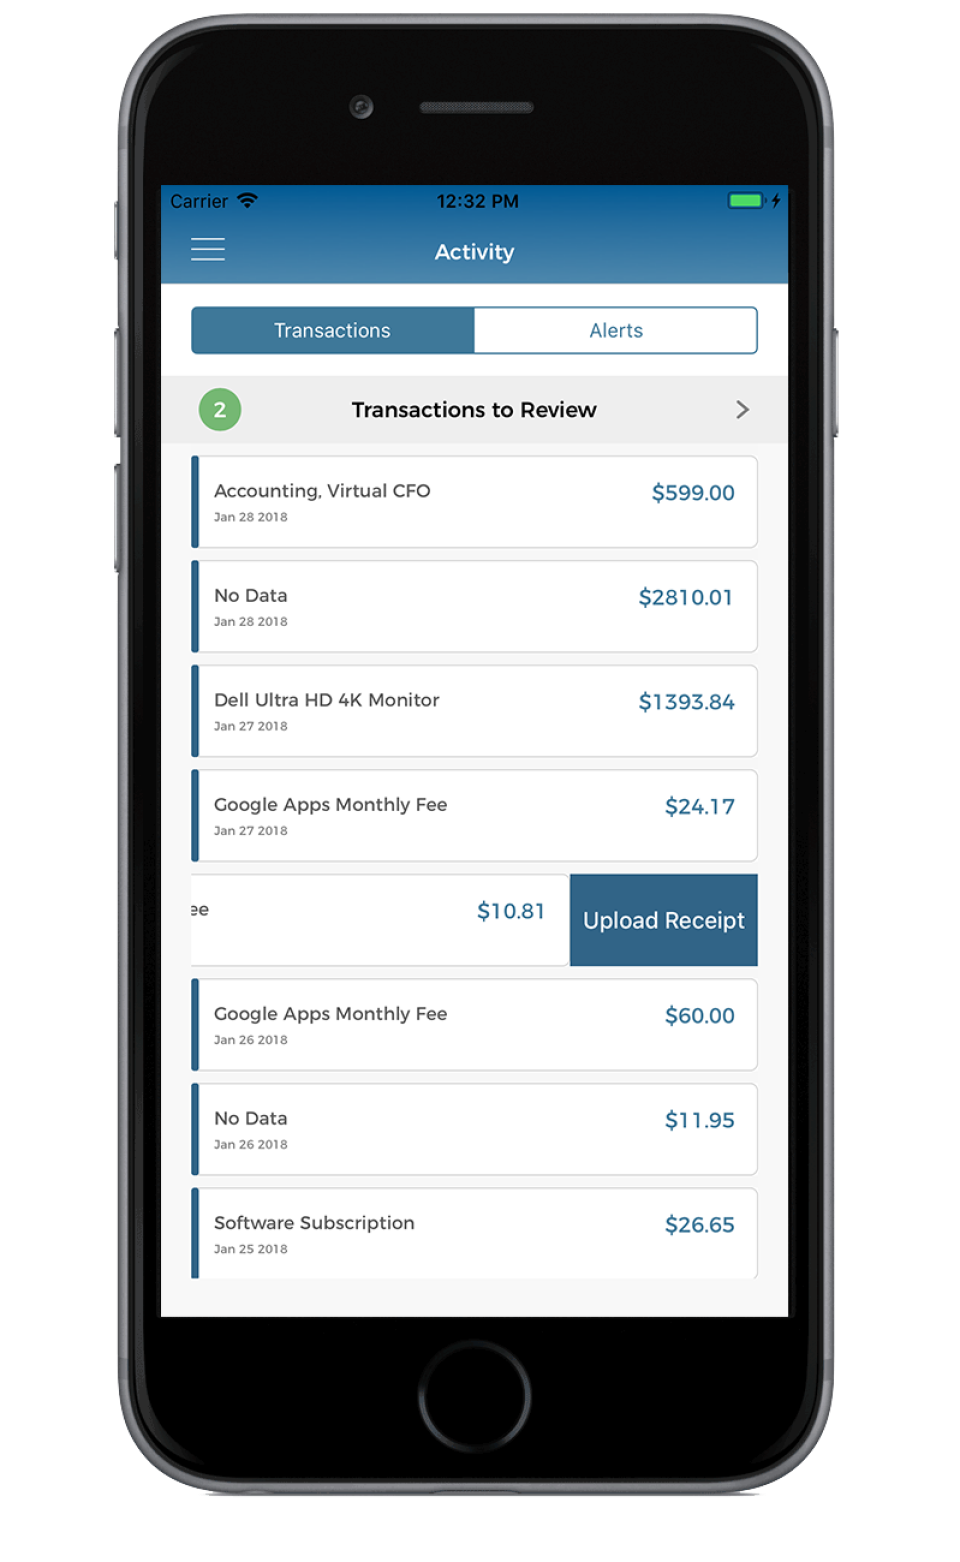 Upload receipts straight into ScaleFactor via mobile device